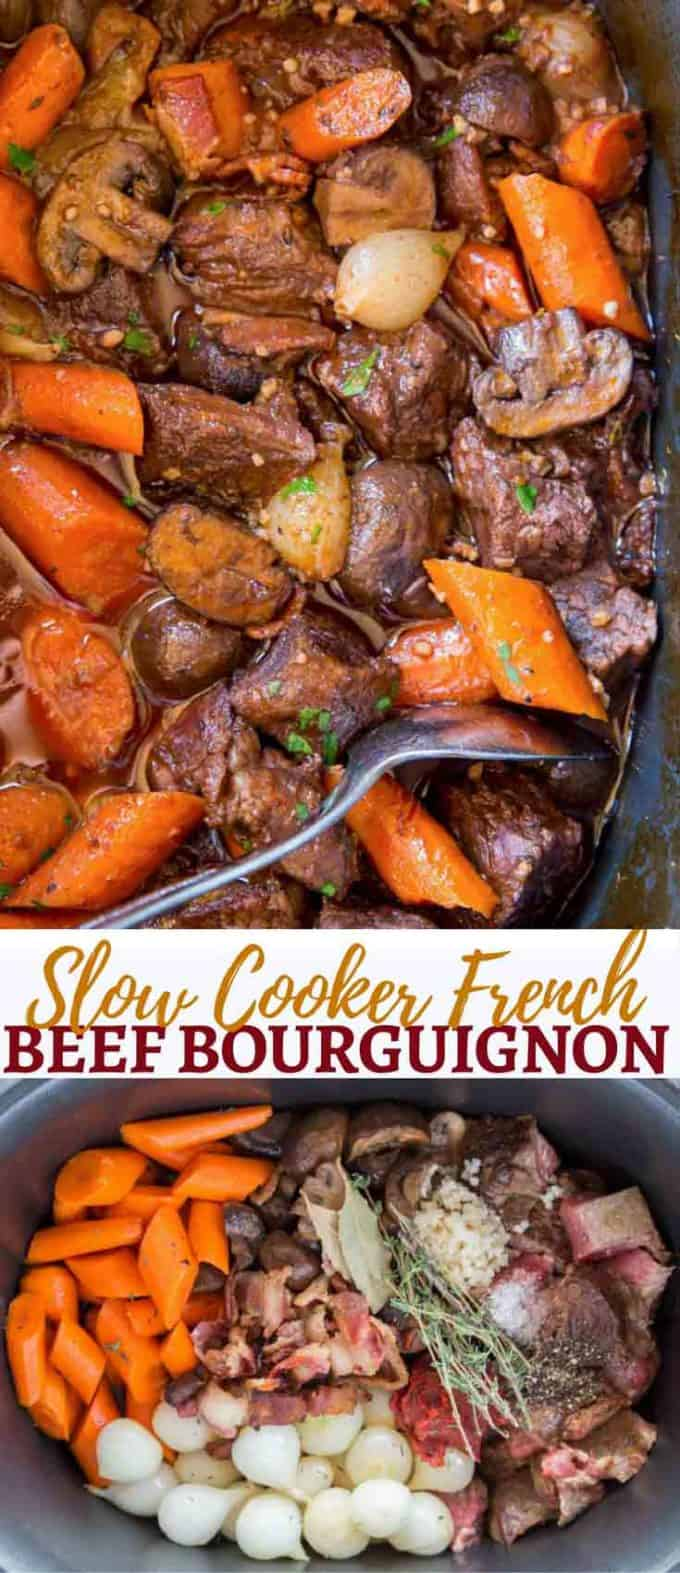 Slow Cooker Beef Bourguignon with all the delicious classic French flavors of beef, red wine, mushrooms and bacon made in your slow cooker.